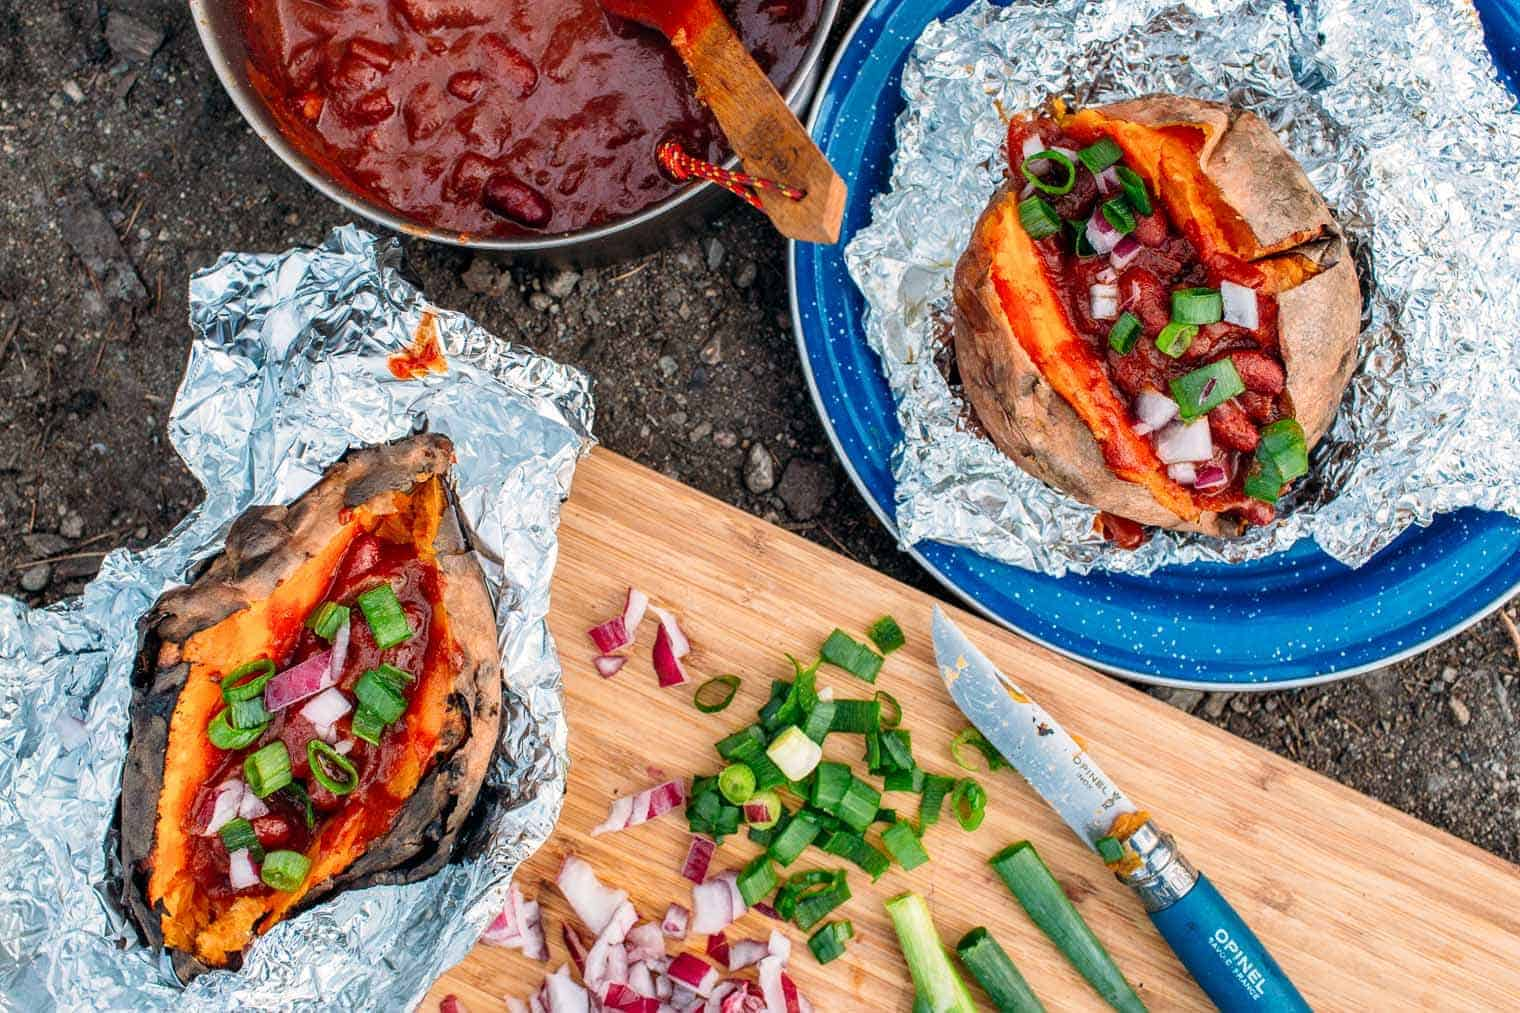 Foil Wrapped Baked Sweet Potatoes With Chili Camping Meal 9